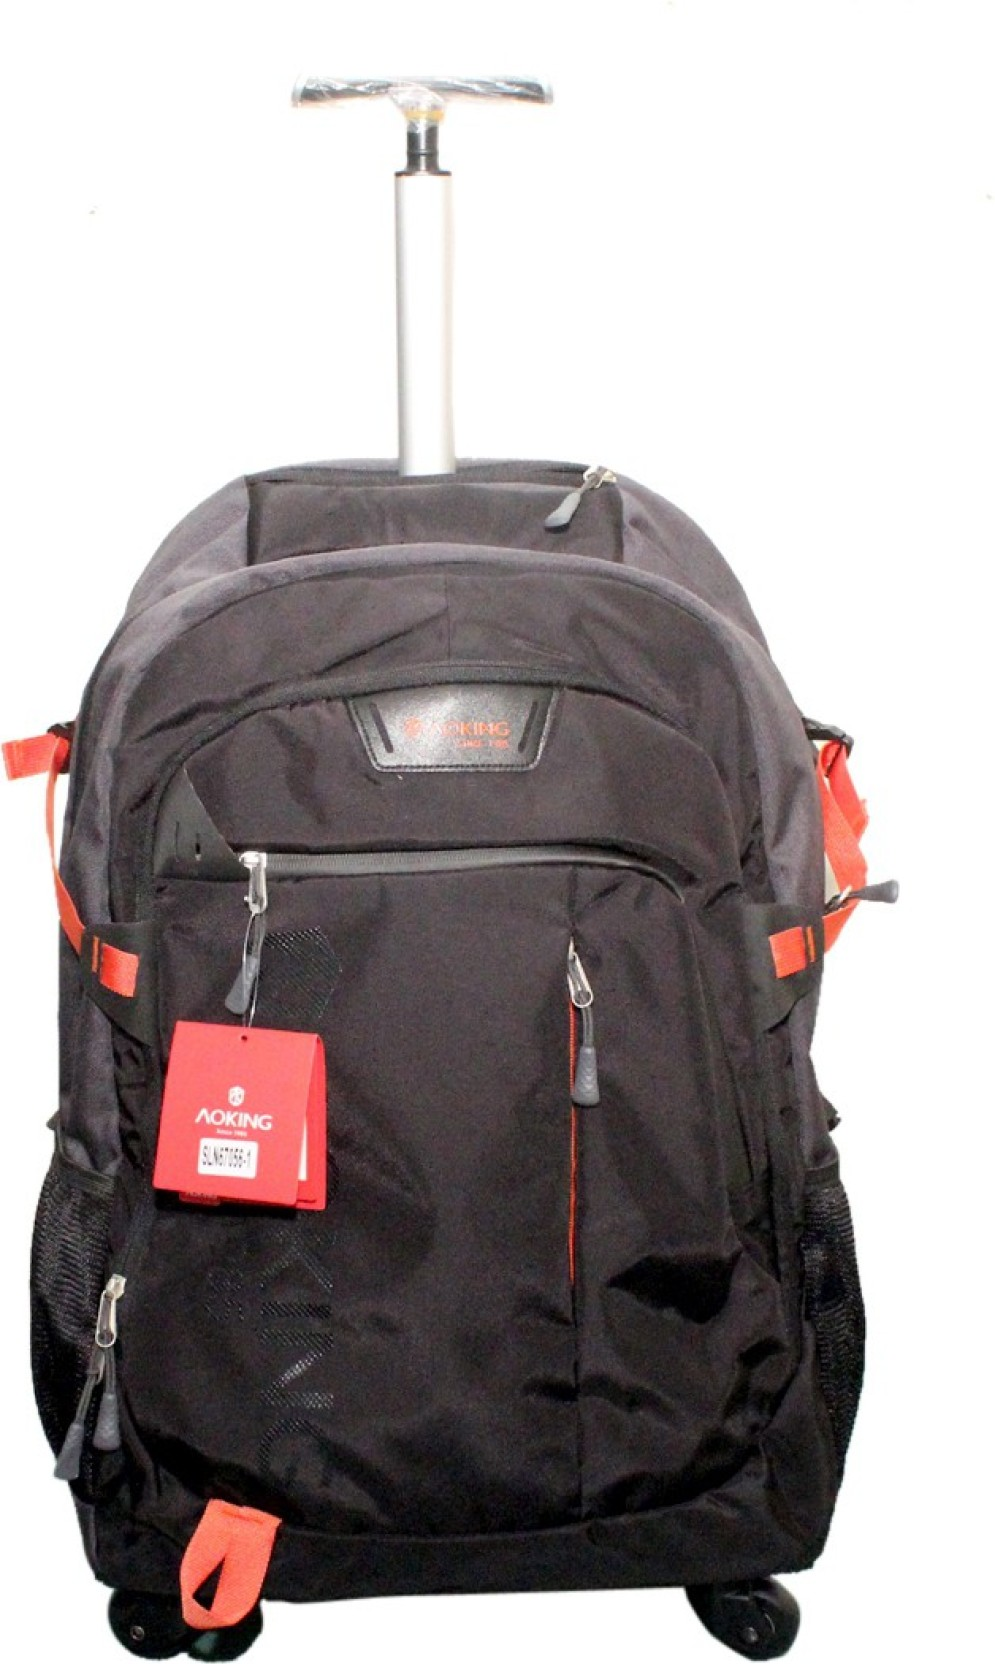 8034745ceb Aoking Laptop Travel Backpack- Fenix Toulouse Handball